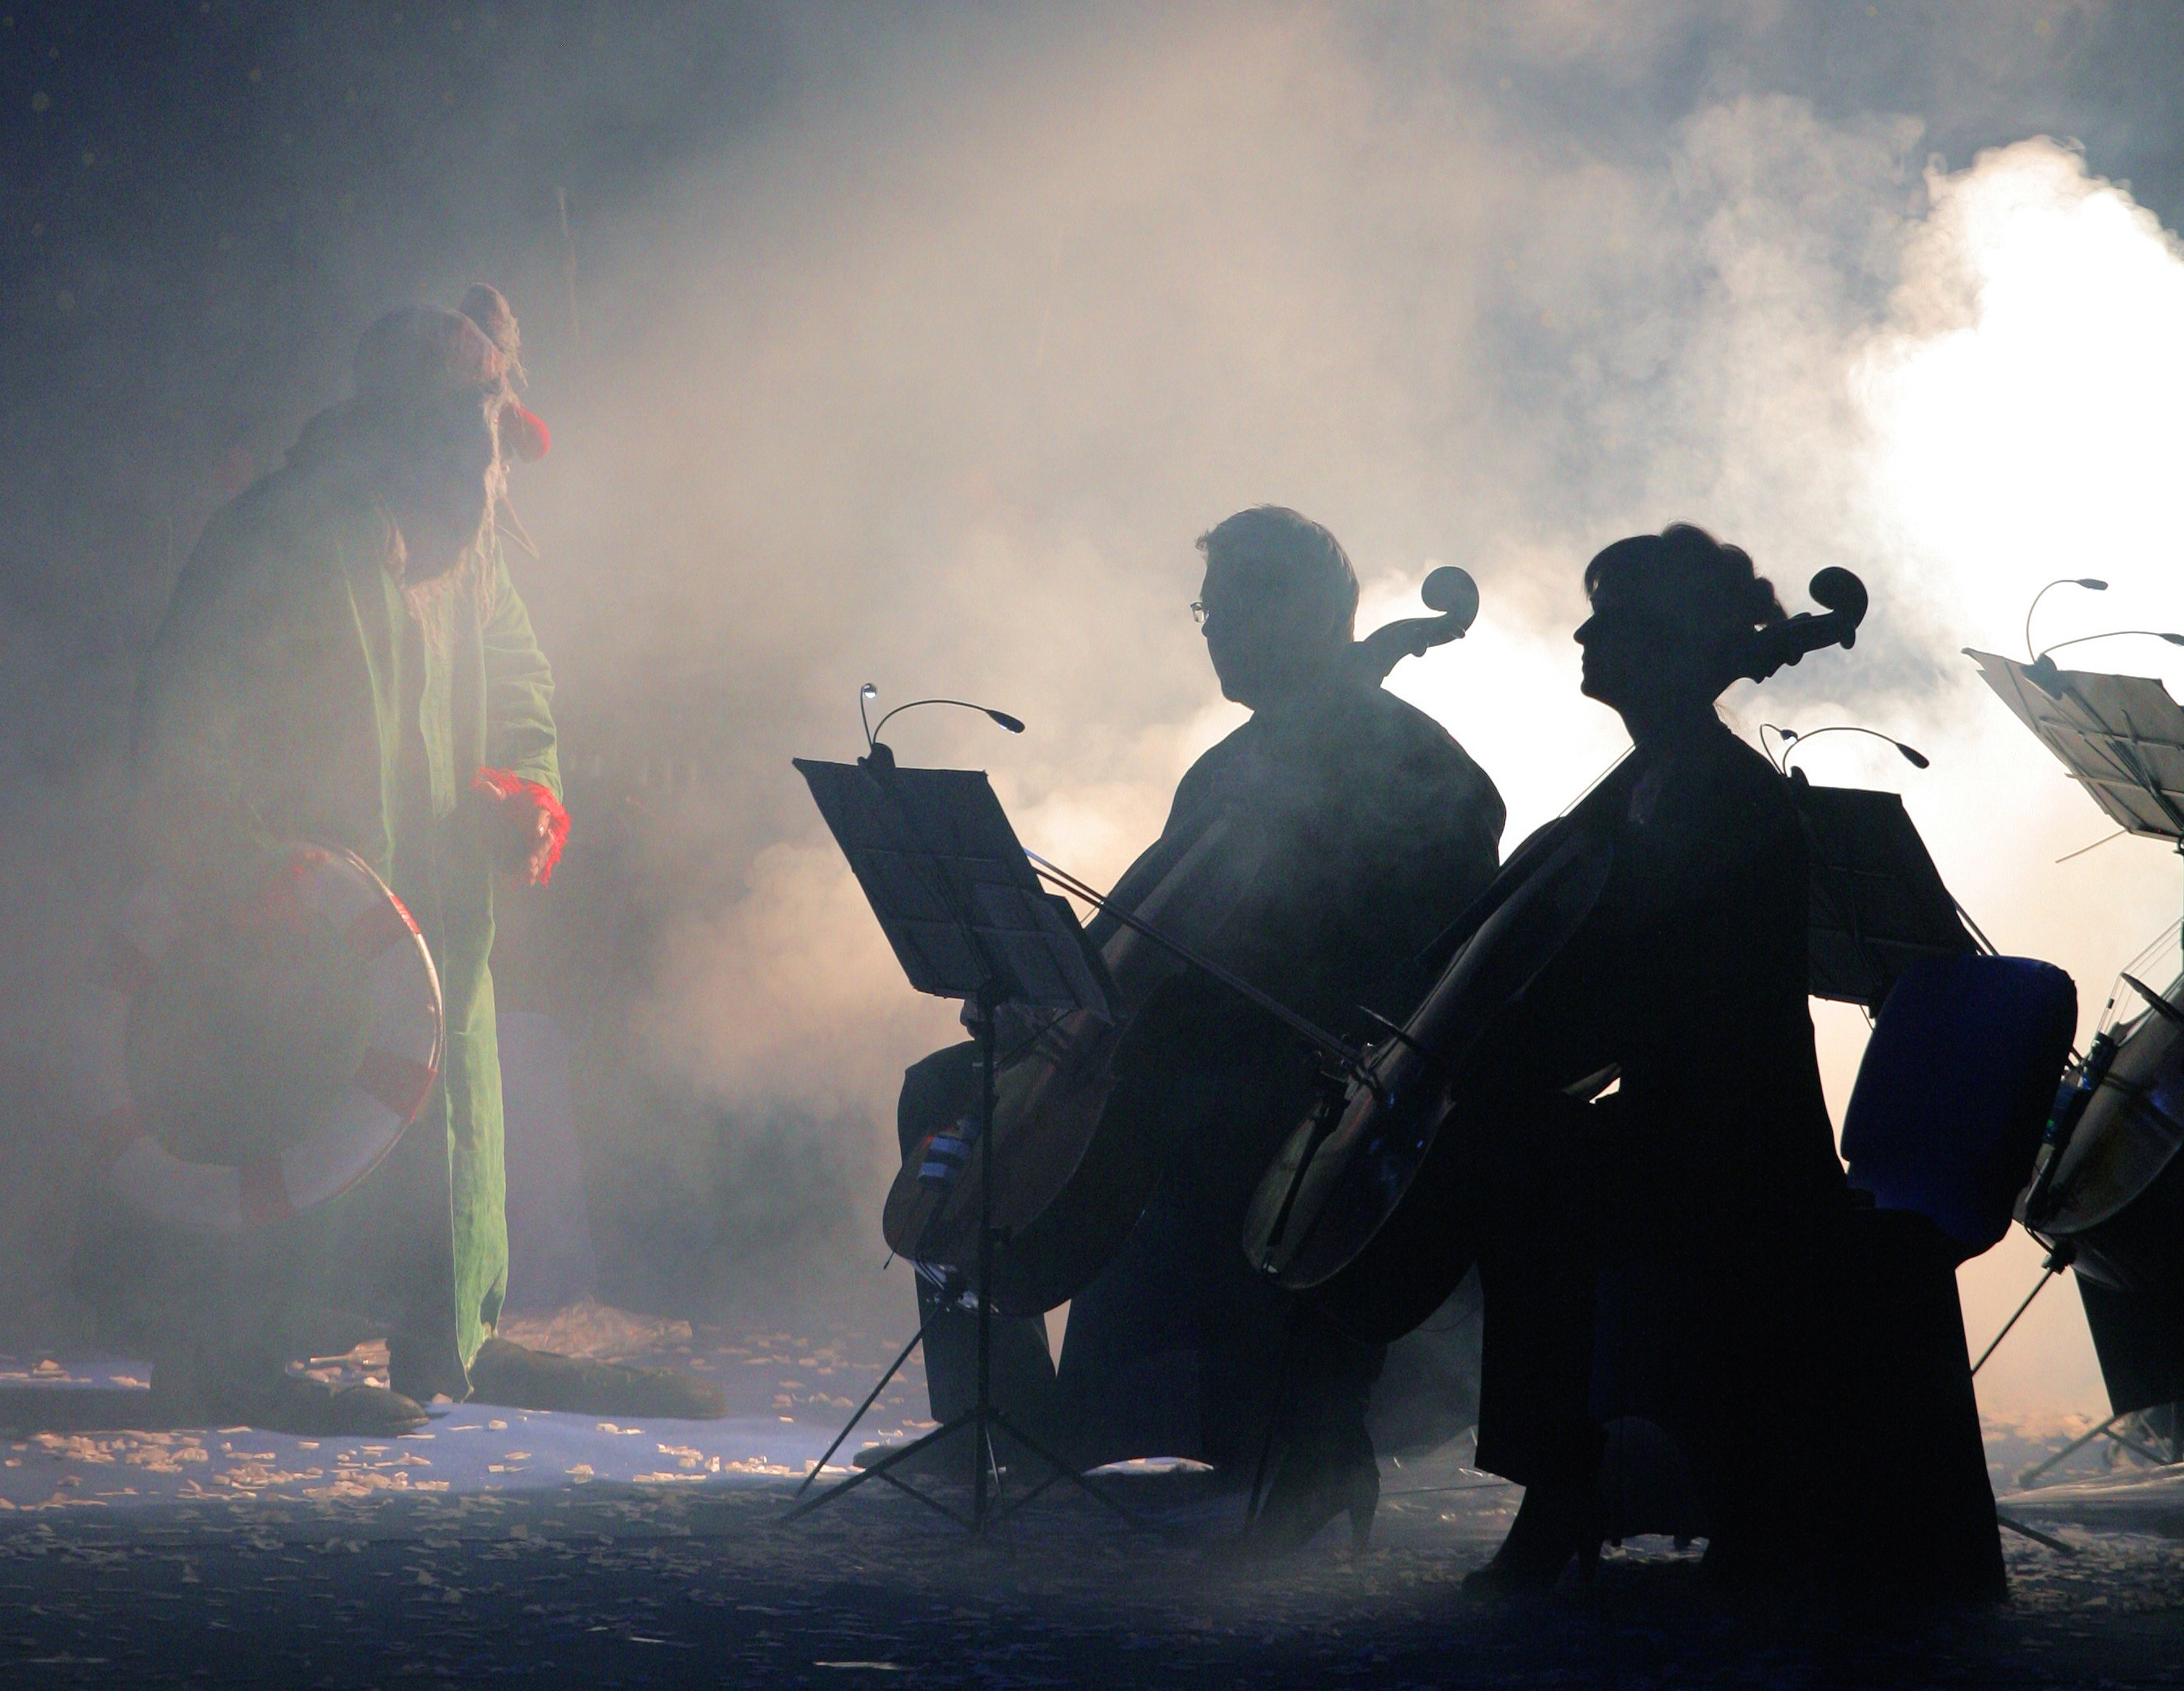 Kremerata Baltica, Gidon Kremer and Slava Polunin presents the SNOWSYMPHONY-